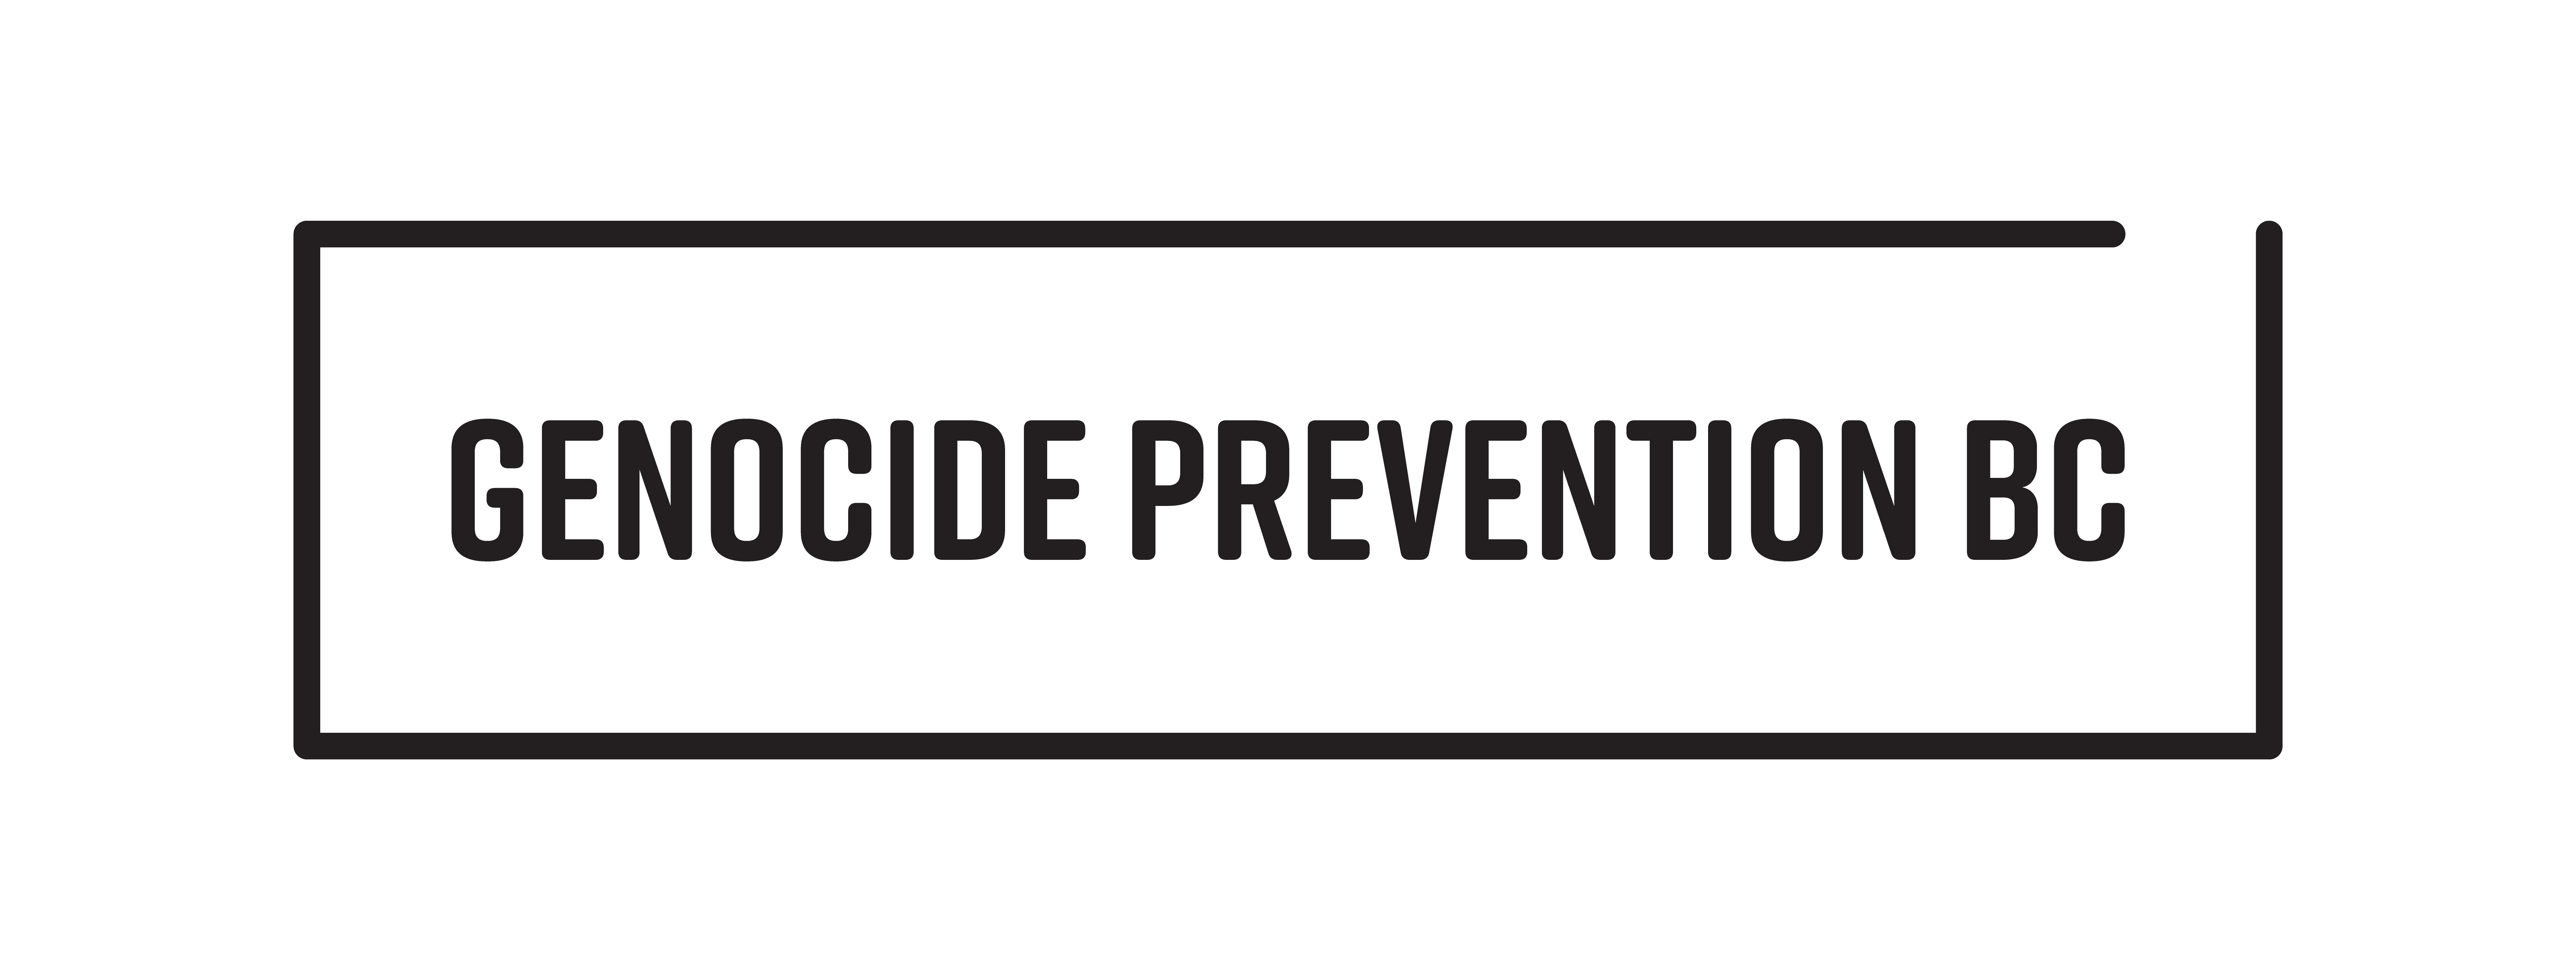 Genocide Prevention BC